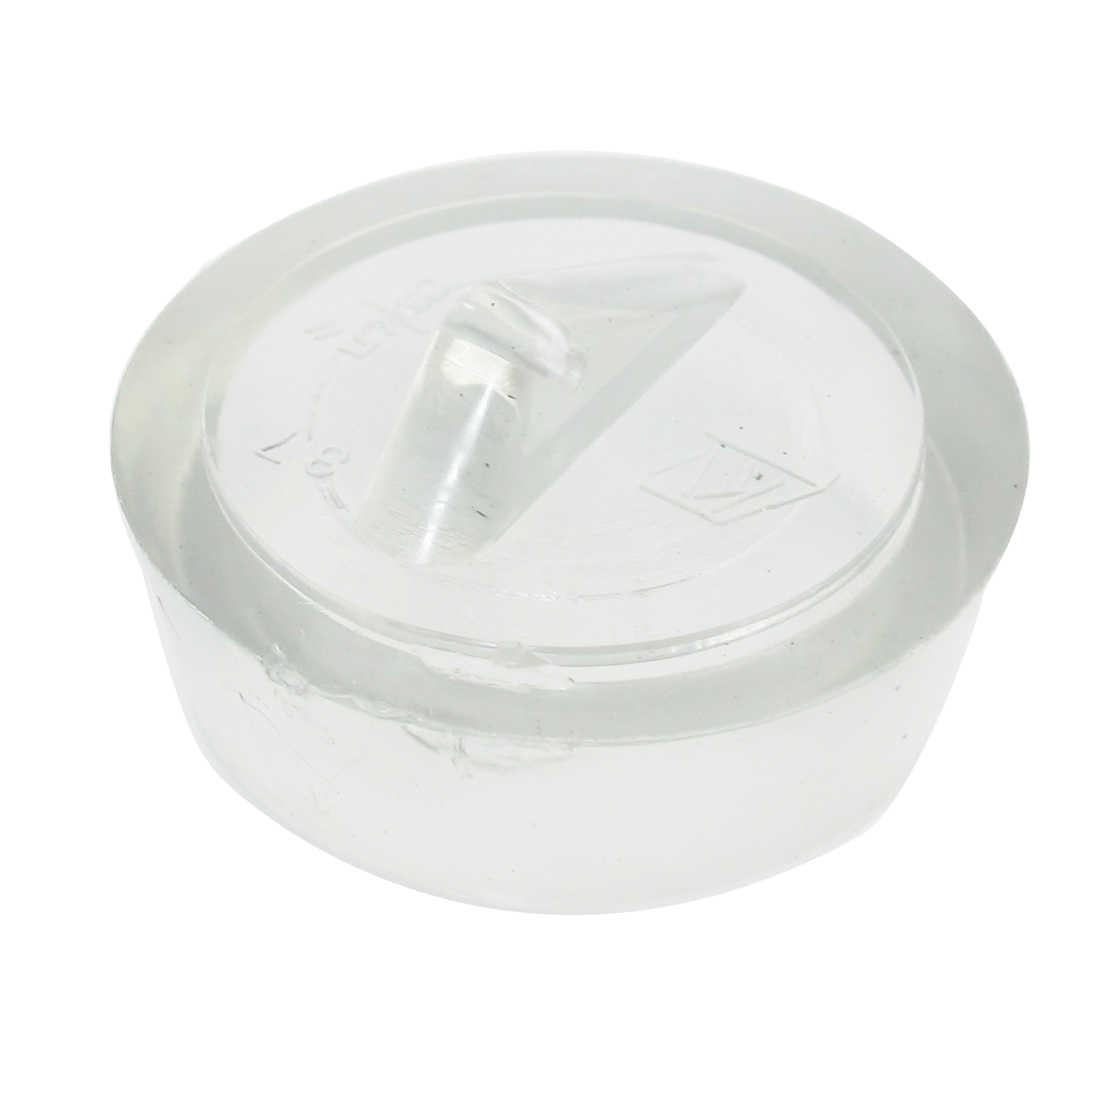 Unique Bargains Replacement Triangular Grip Clear Sink Disposal Stopper Plug 41mm Dia